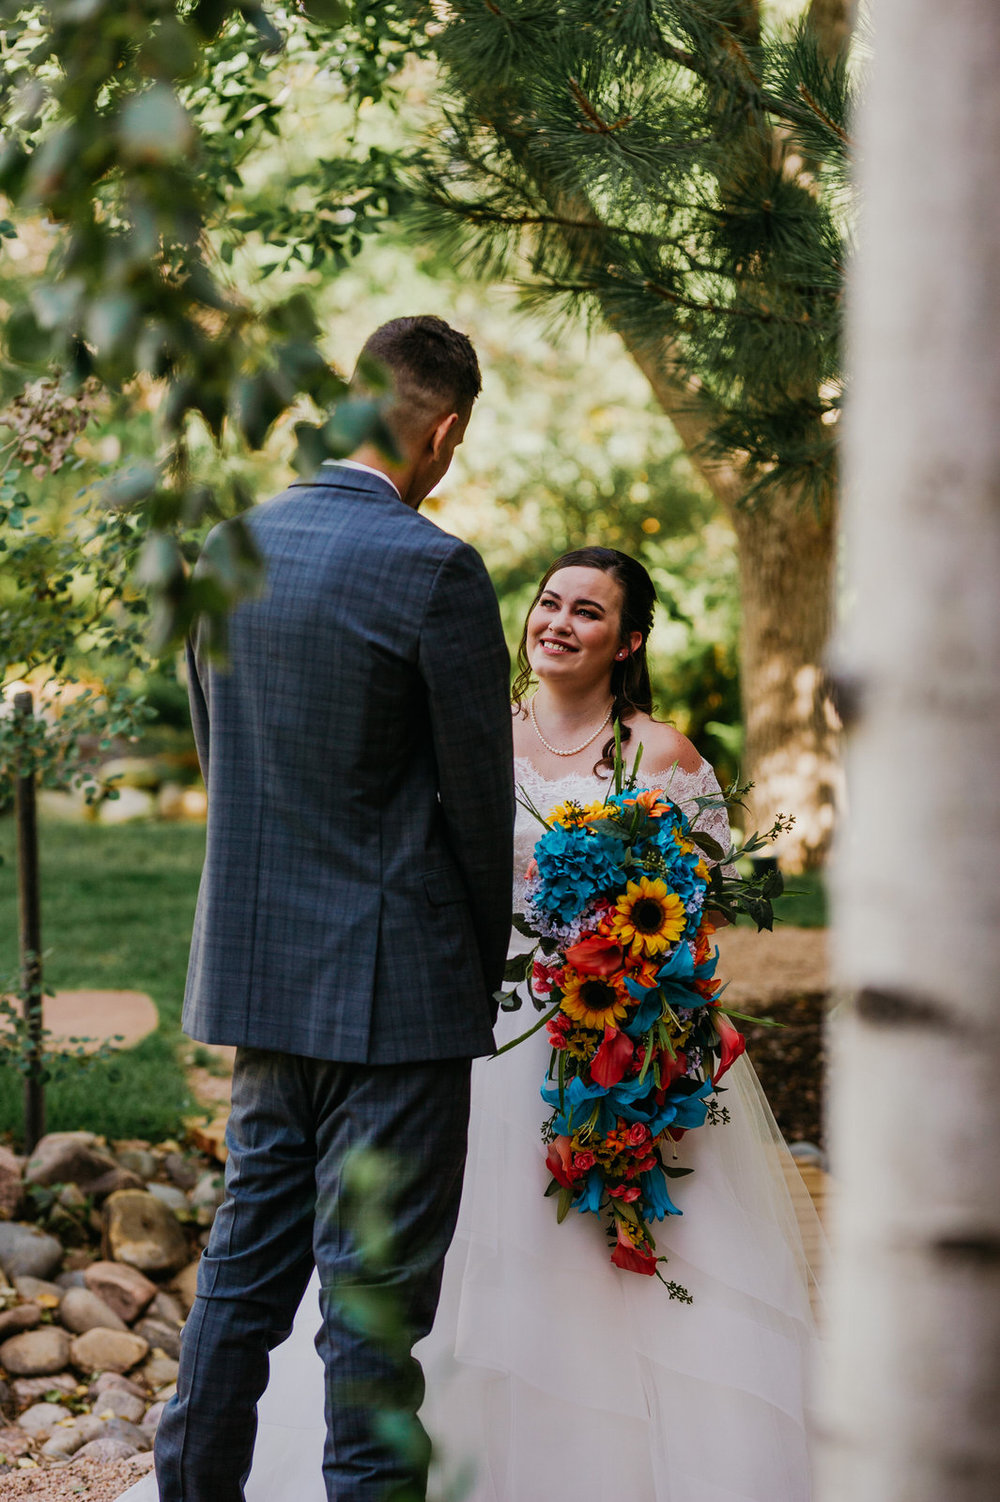 Lisa&Logan'sWeddingBlog18.jpg